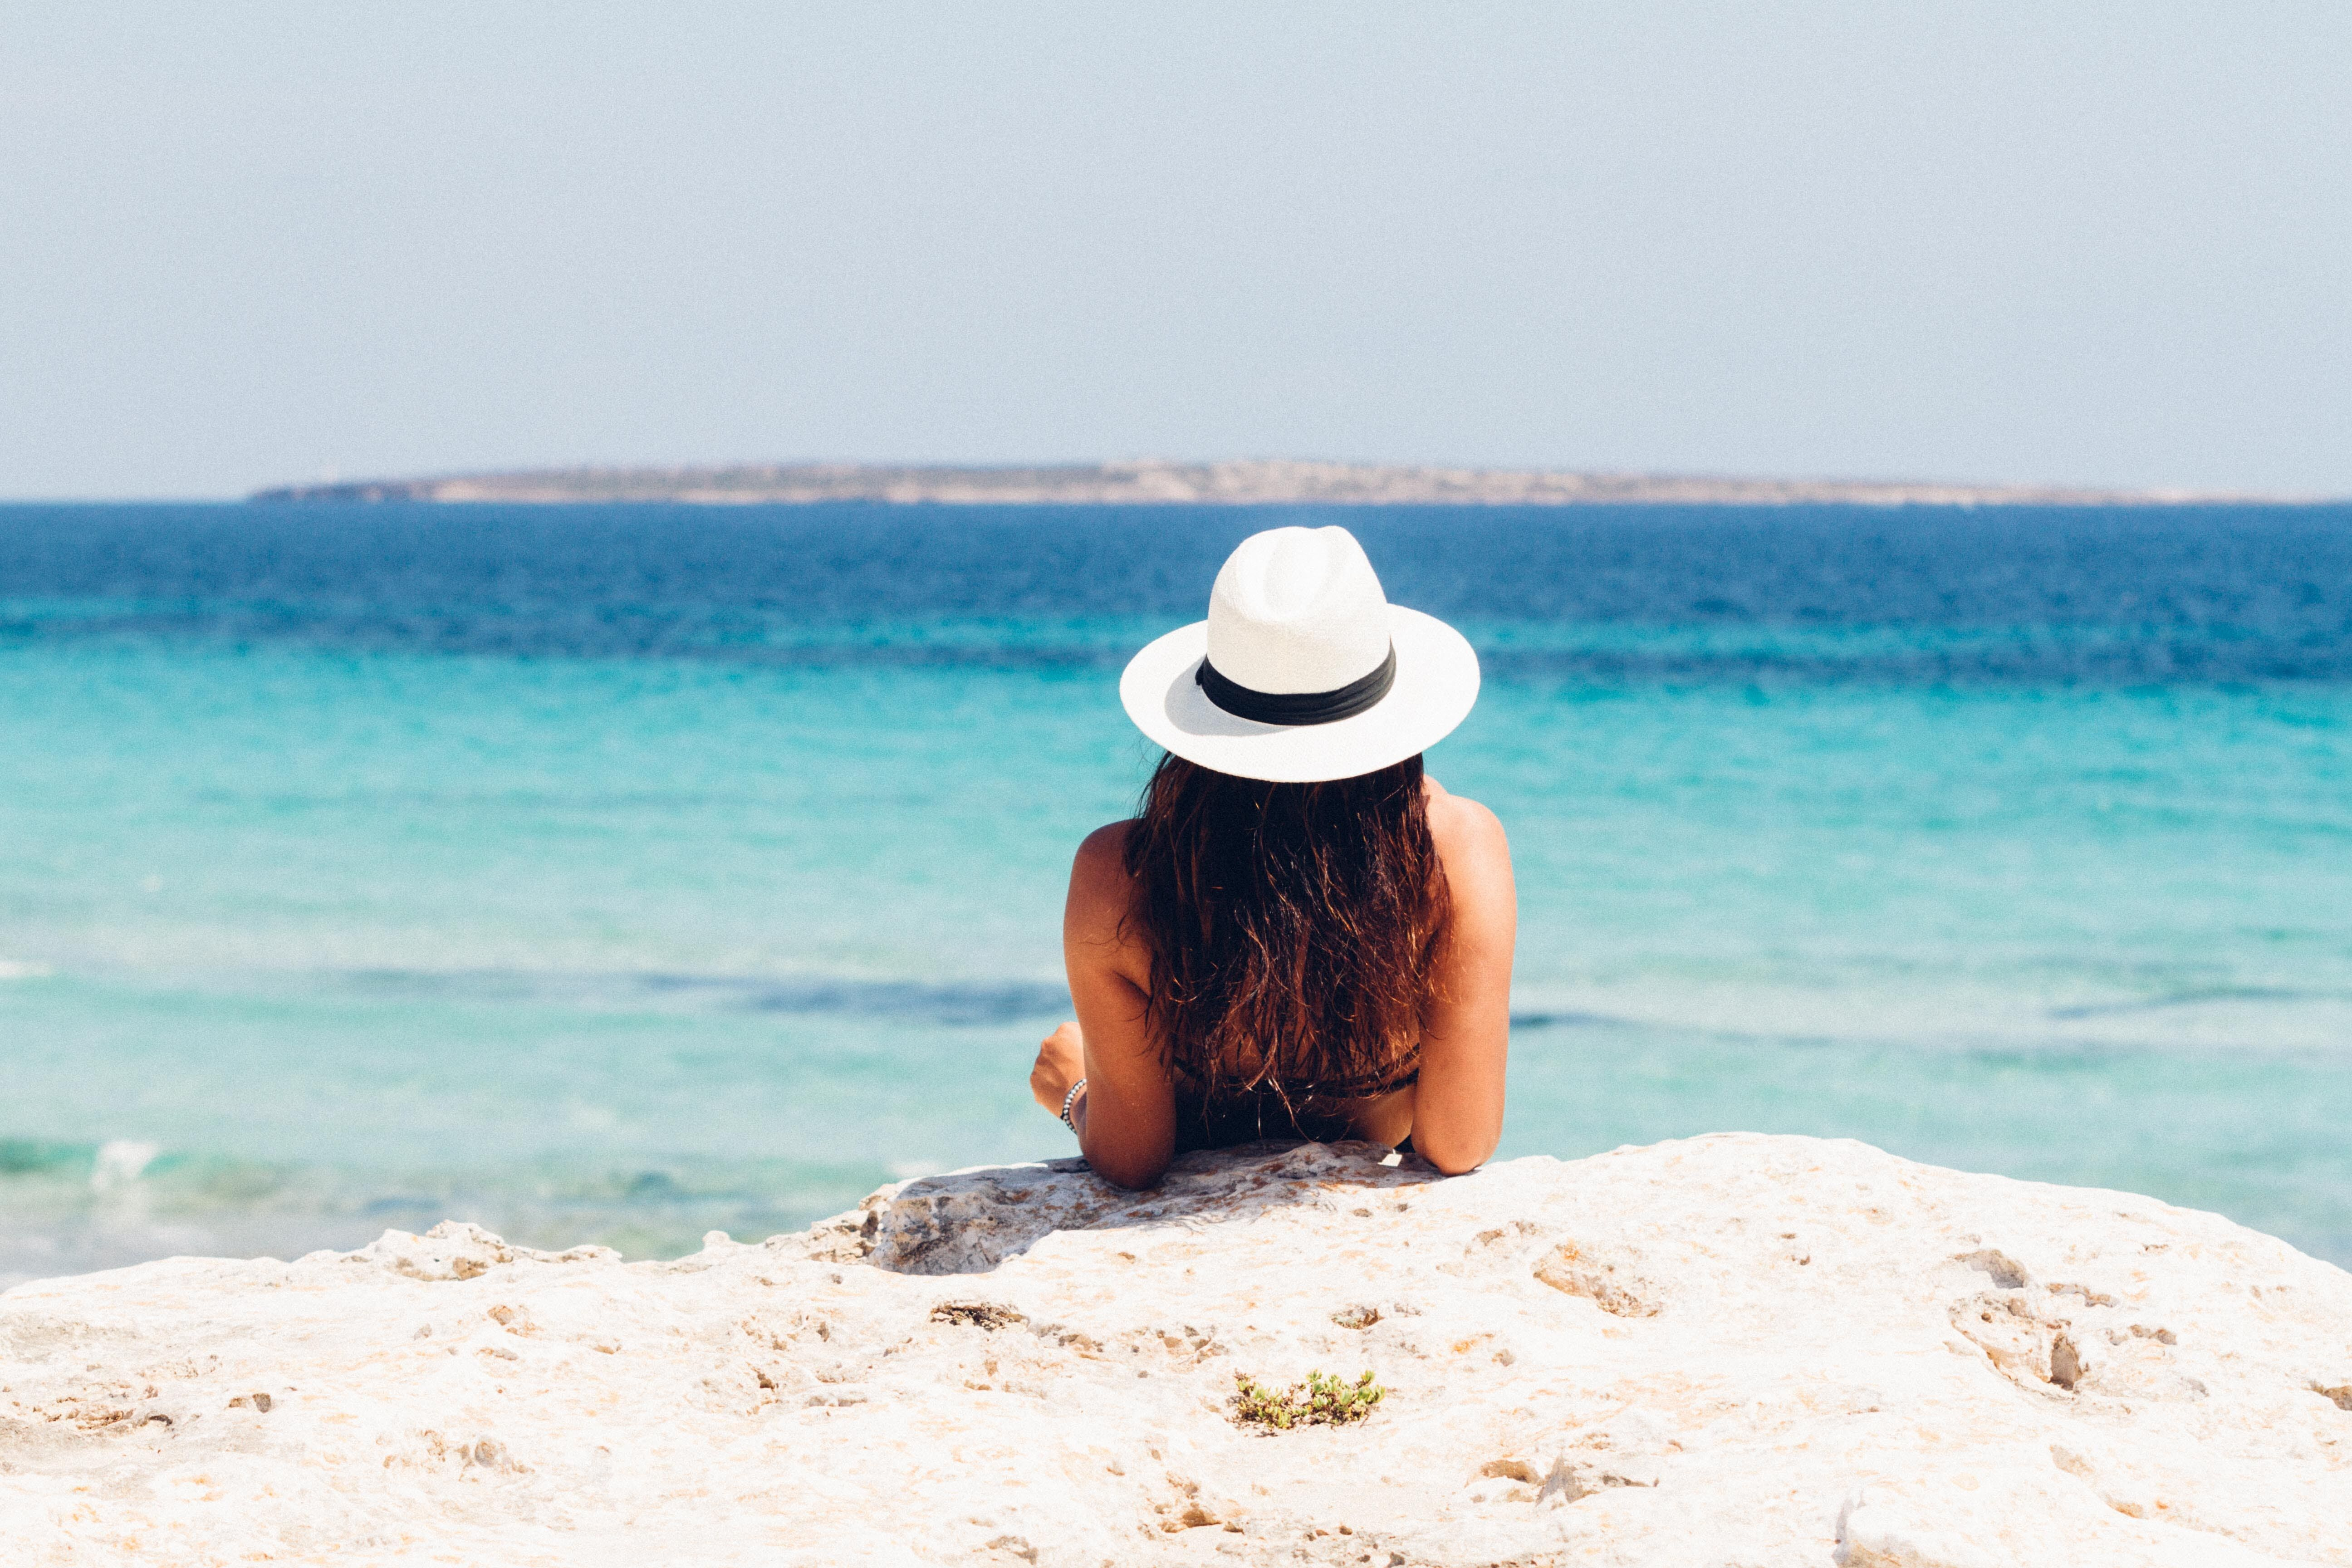 Here's your perfect vacation destination based on your Myers-Briggs personality type